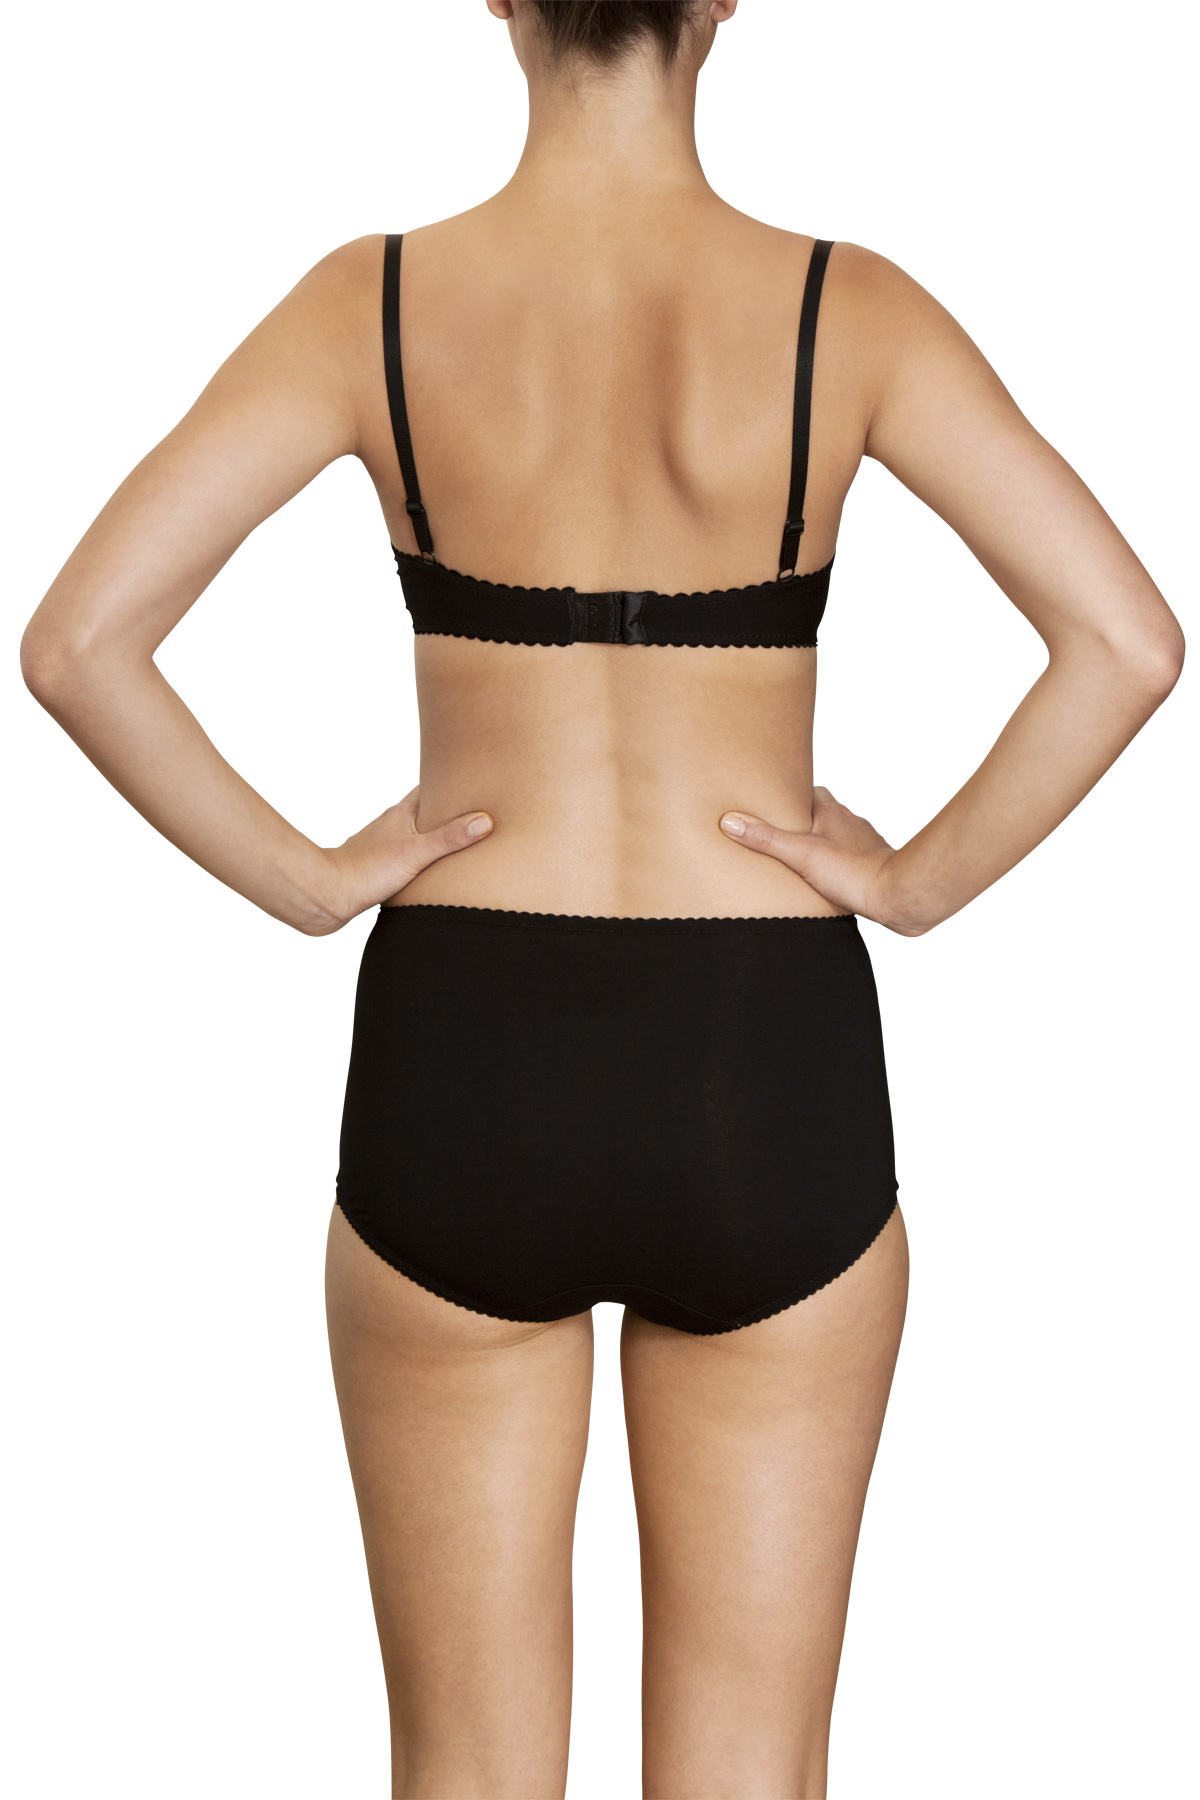 Overstock uses cookies to ensure you get the best experience on our site. Learn more. OK Cotton Bras. Clothing & Shoes / Women's Clothing / Intimates / Bras. of Results. Sort by: Rhonda Shear Women's White/Blue/Black Cotton/Spandex Fun Zip Sports Bra.